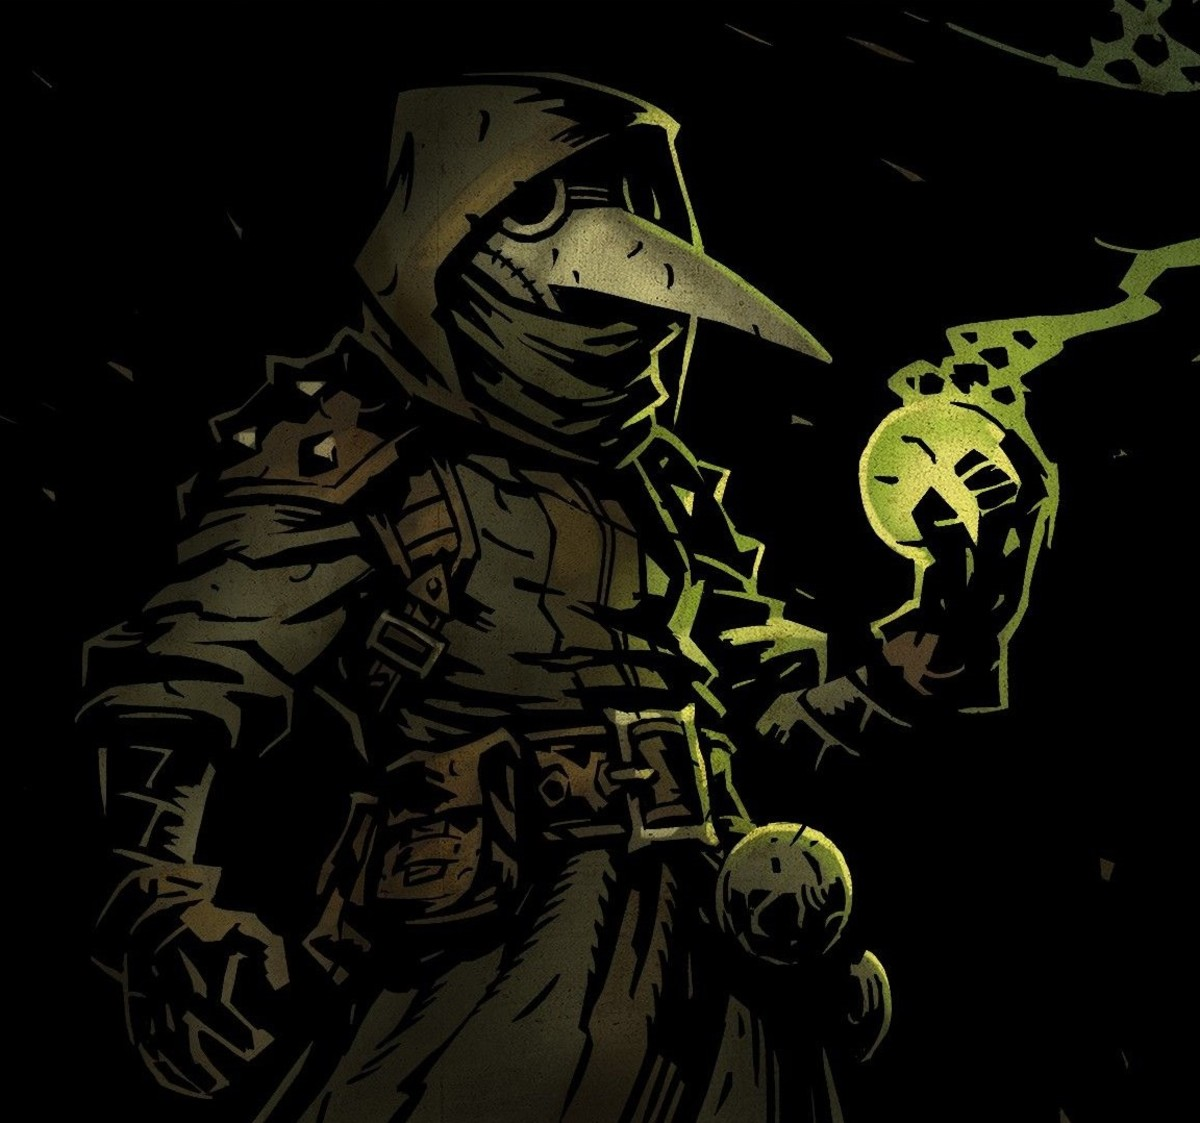 The Plague Doctor in Darkest Dungeon